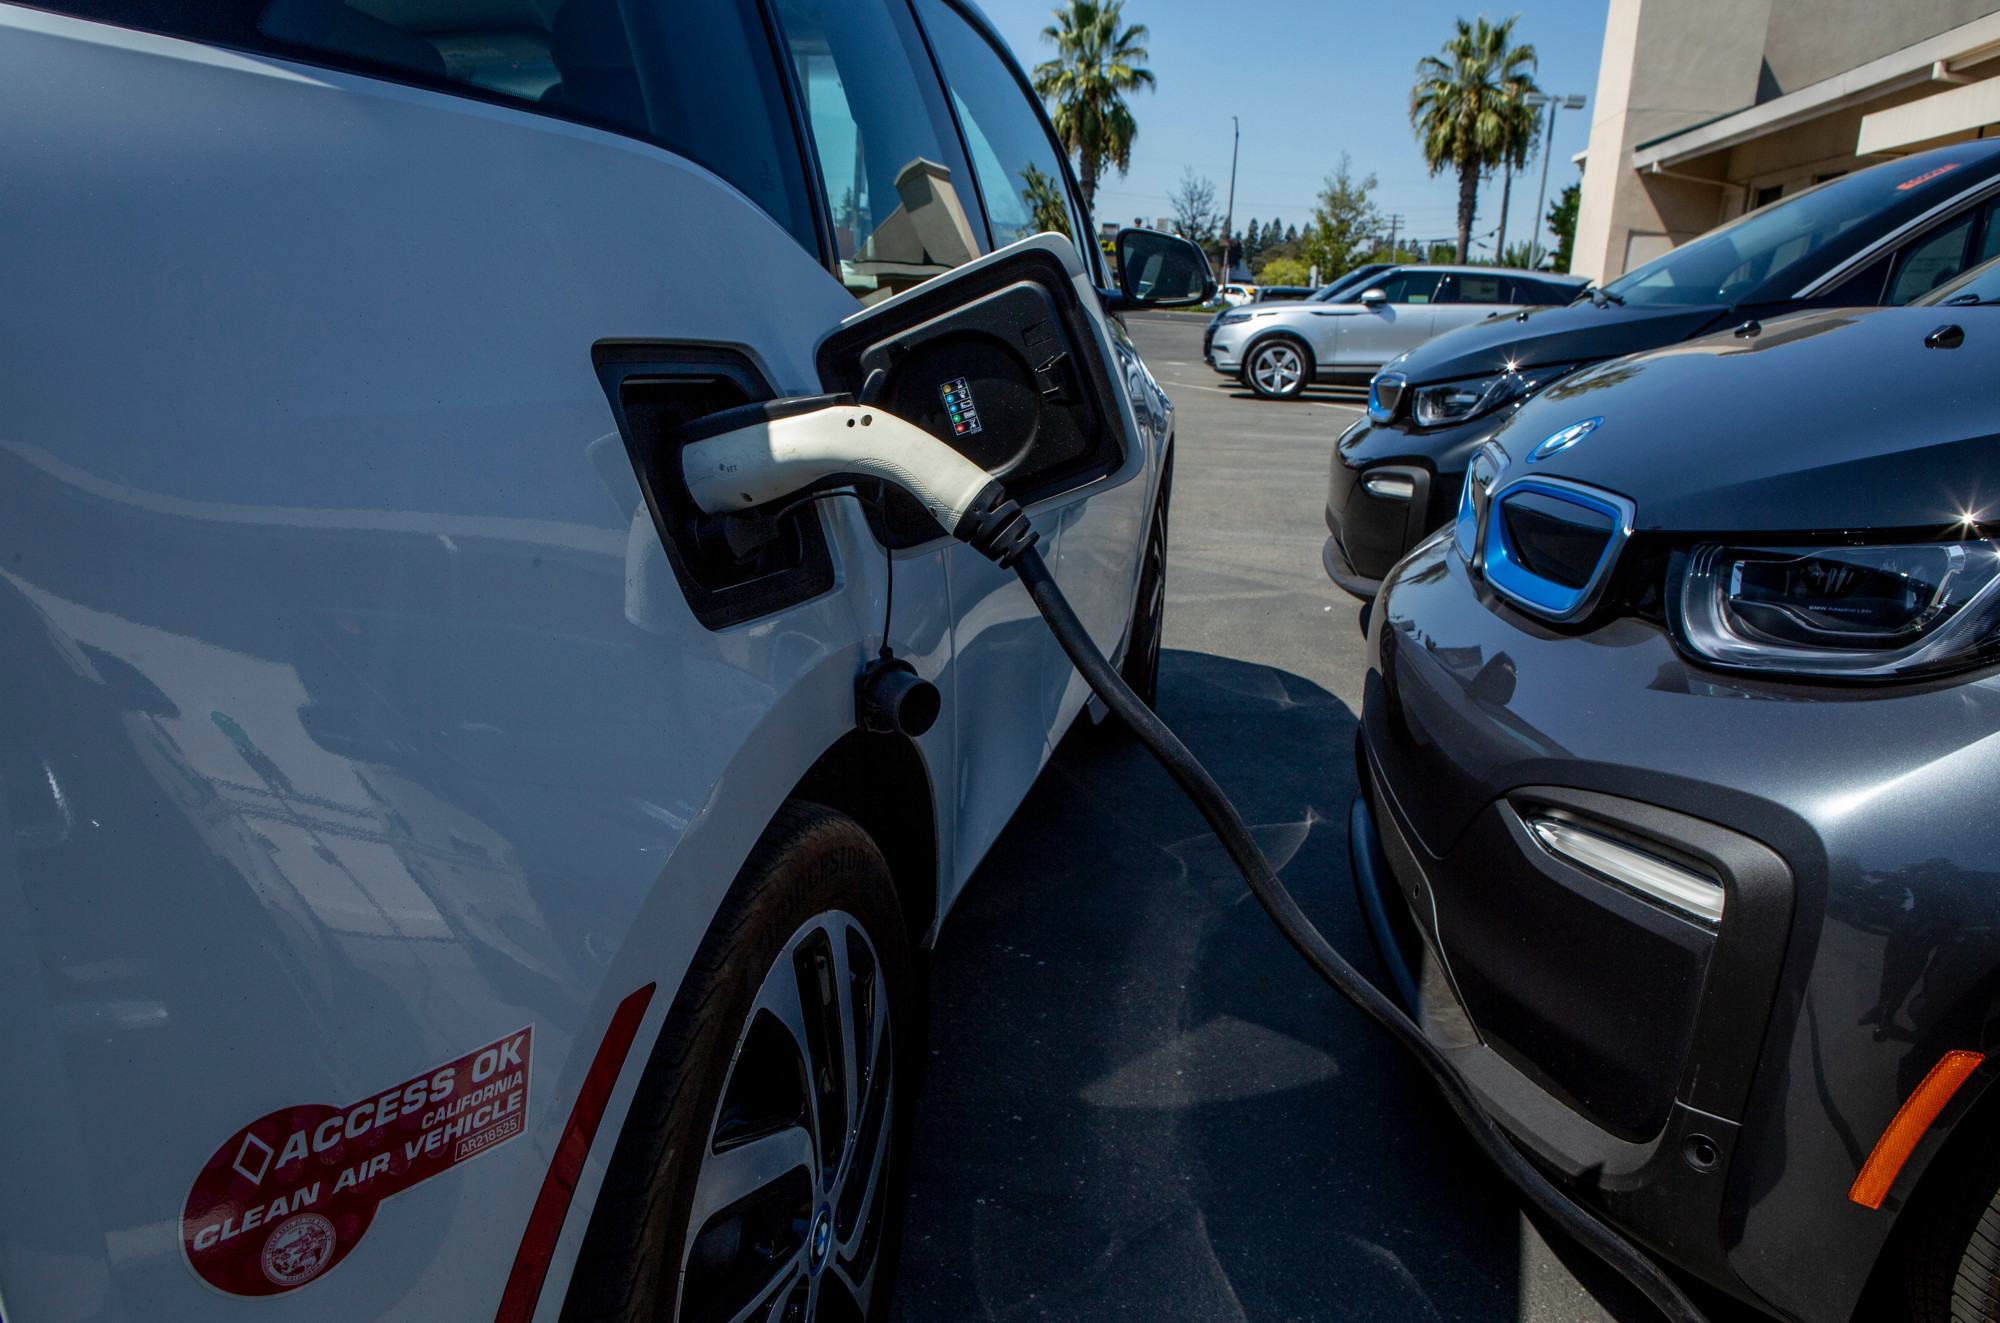 Trump's Justice Department's antitrust 'investigation' of California deal with car makers is an abuse of power